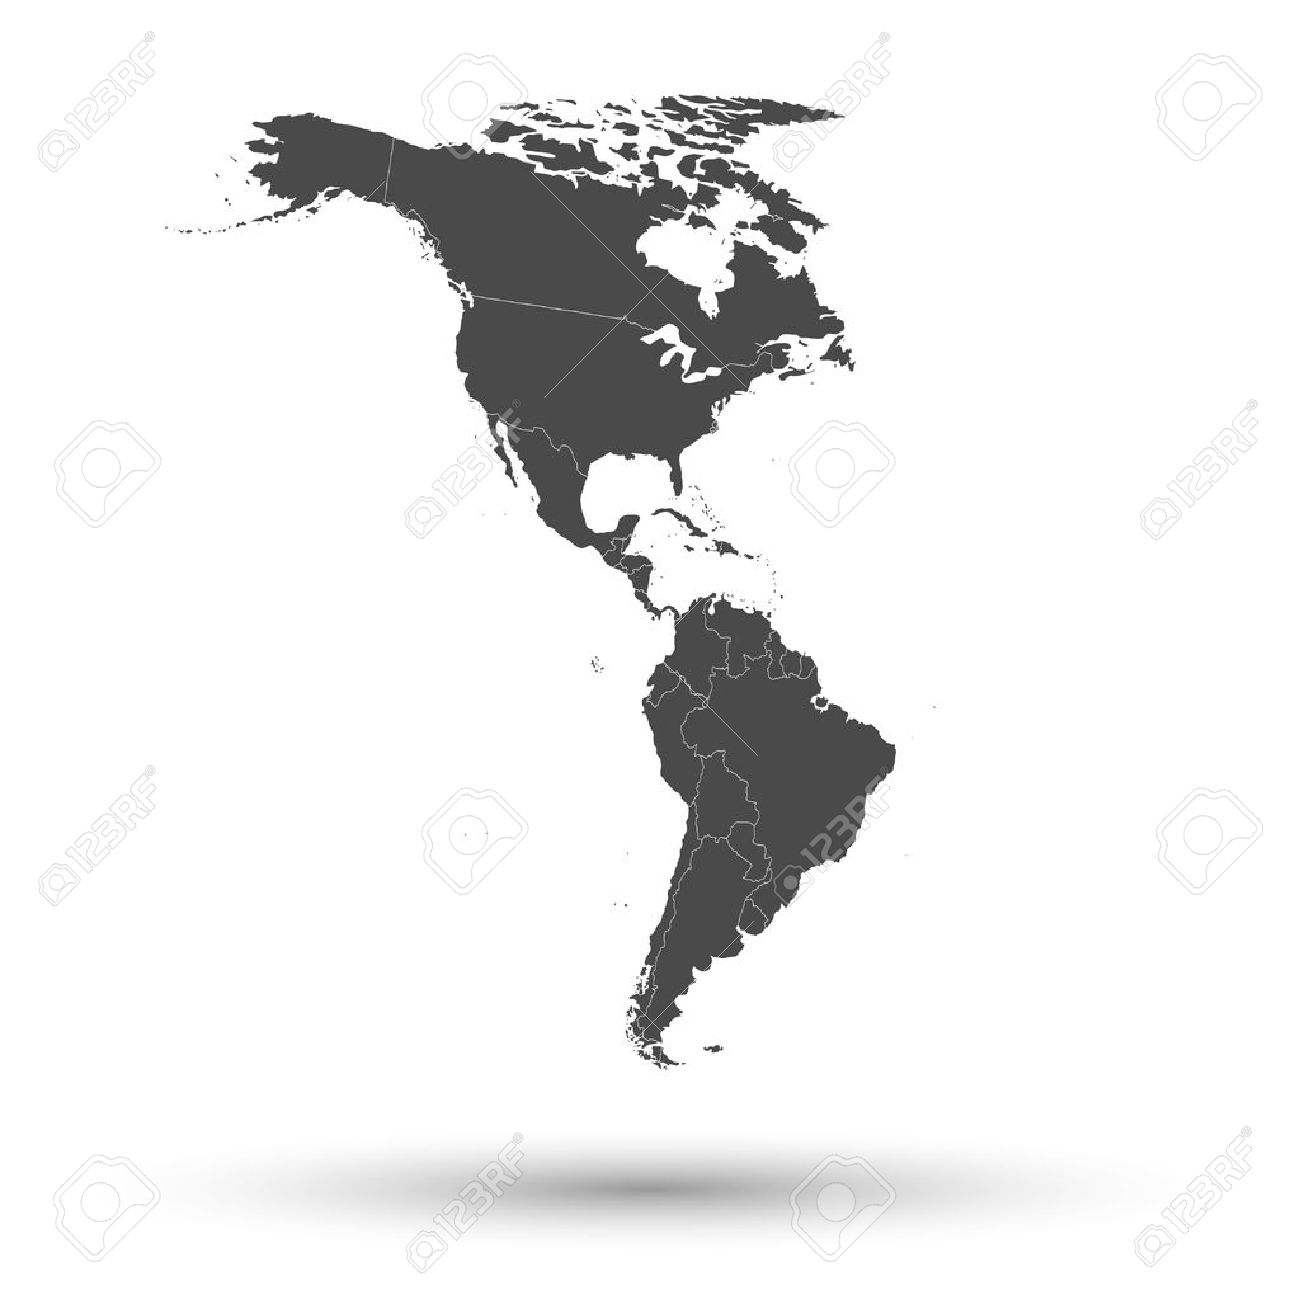 North And South America Map Background Vector Royalty Free - North and south america map